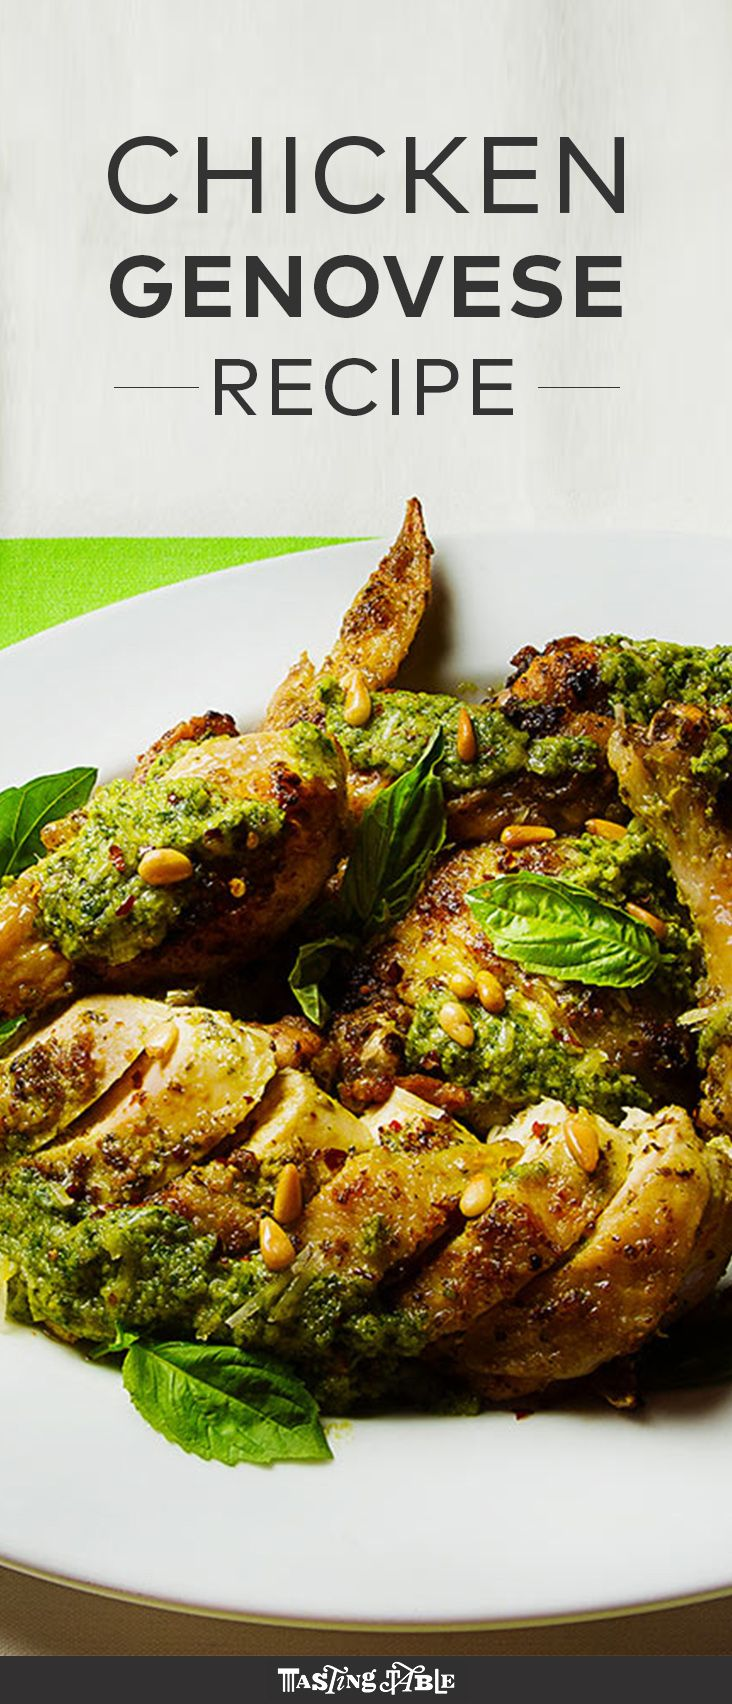 Rich pesto is rubbed under the skin before roasting for this herb-packed spring dish.